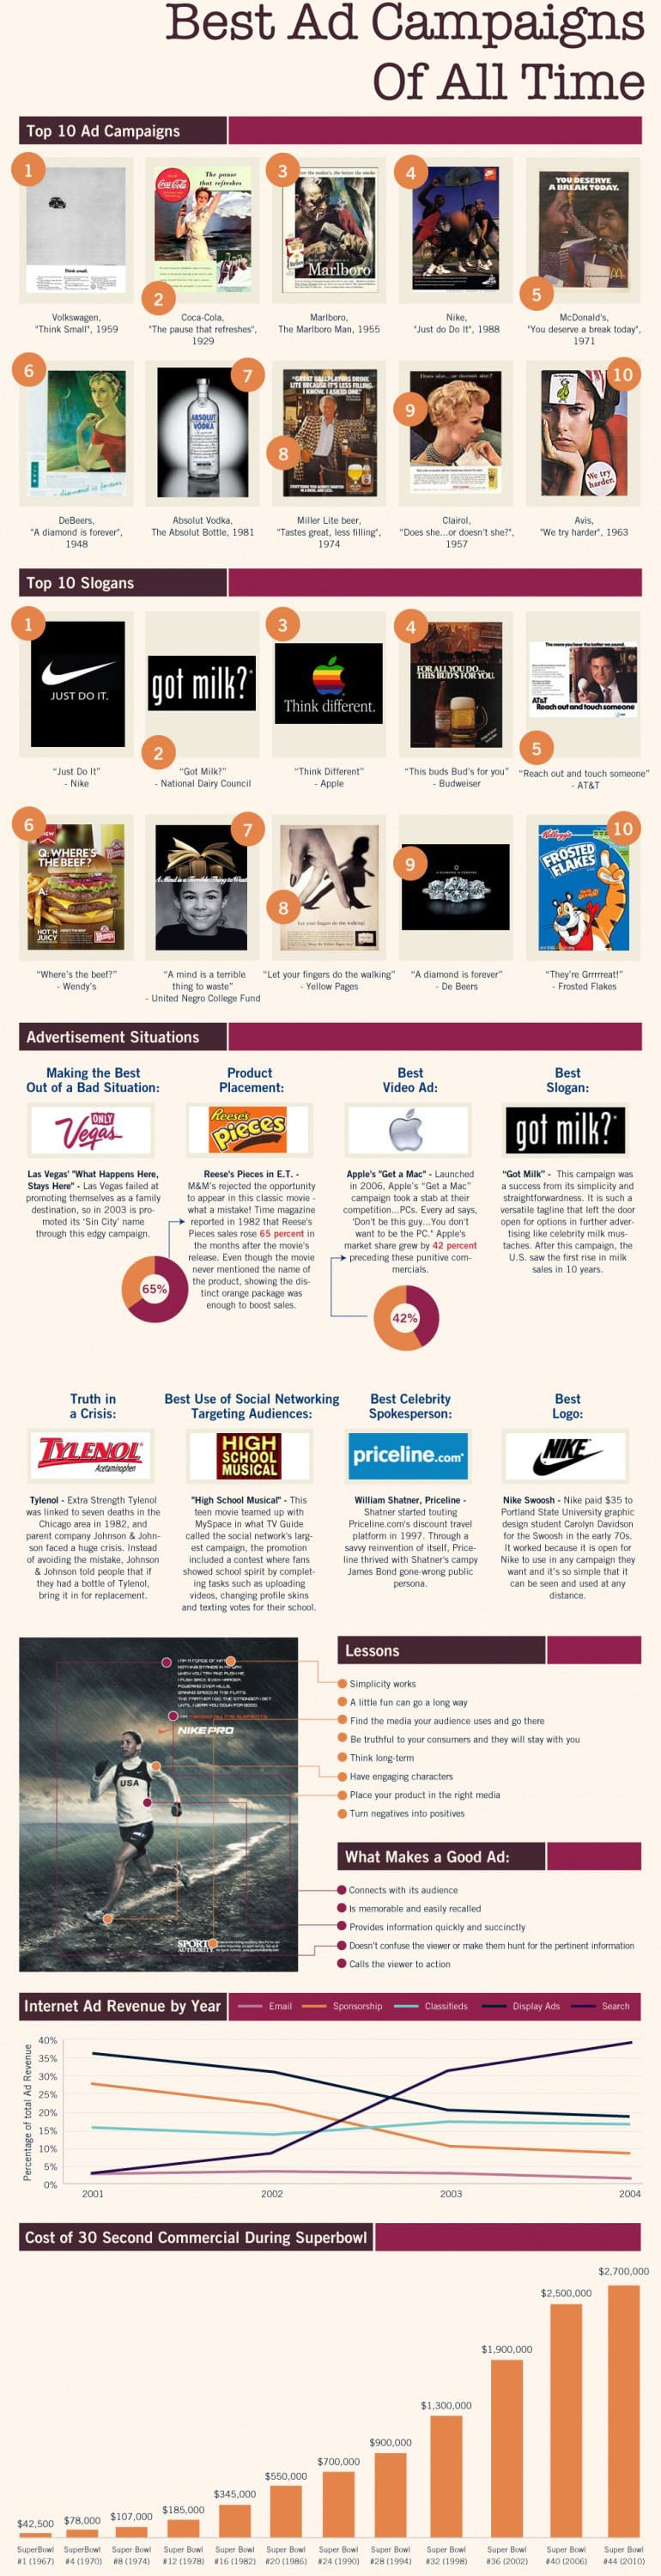 Top 10 Best Ad Campaigns & Slogans Of All Time [Infographic]